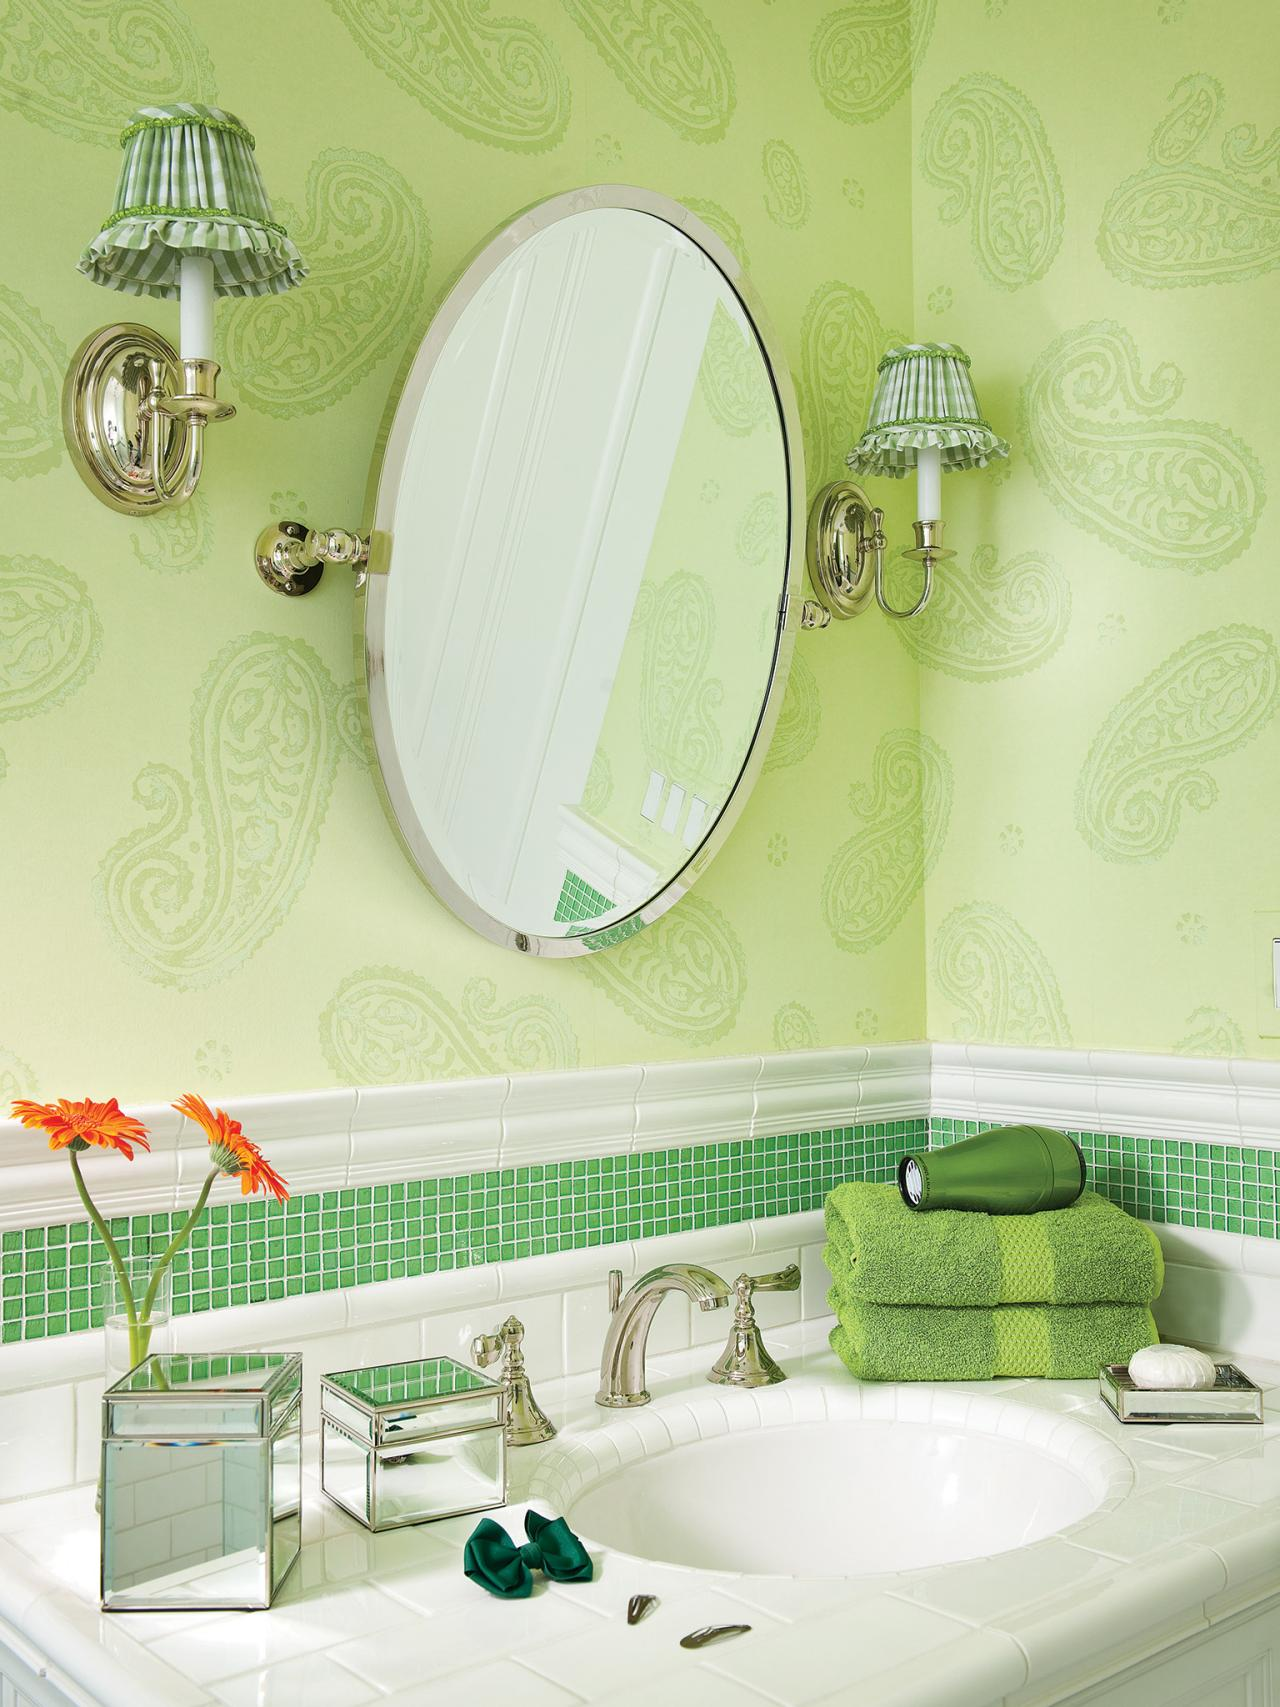 CI-Allure-of-French-and-Italian-Decor_Green-White-Bathroom-Pg79_3x4.jpg.rend.hgtvcom.1280.1707